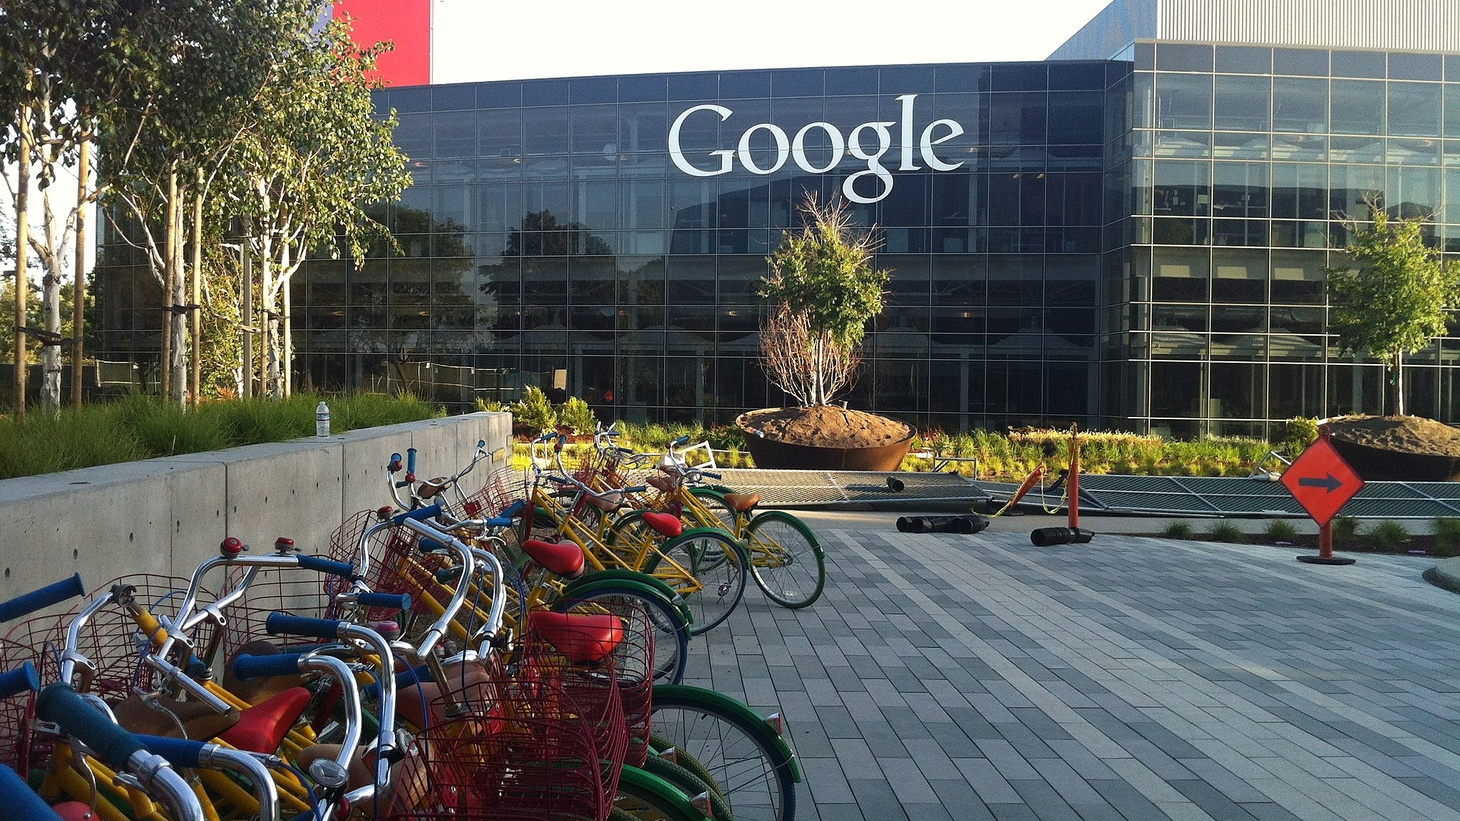 Google campus in Mountain View, California.